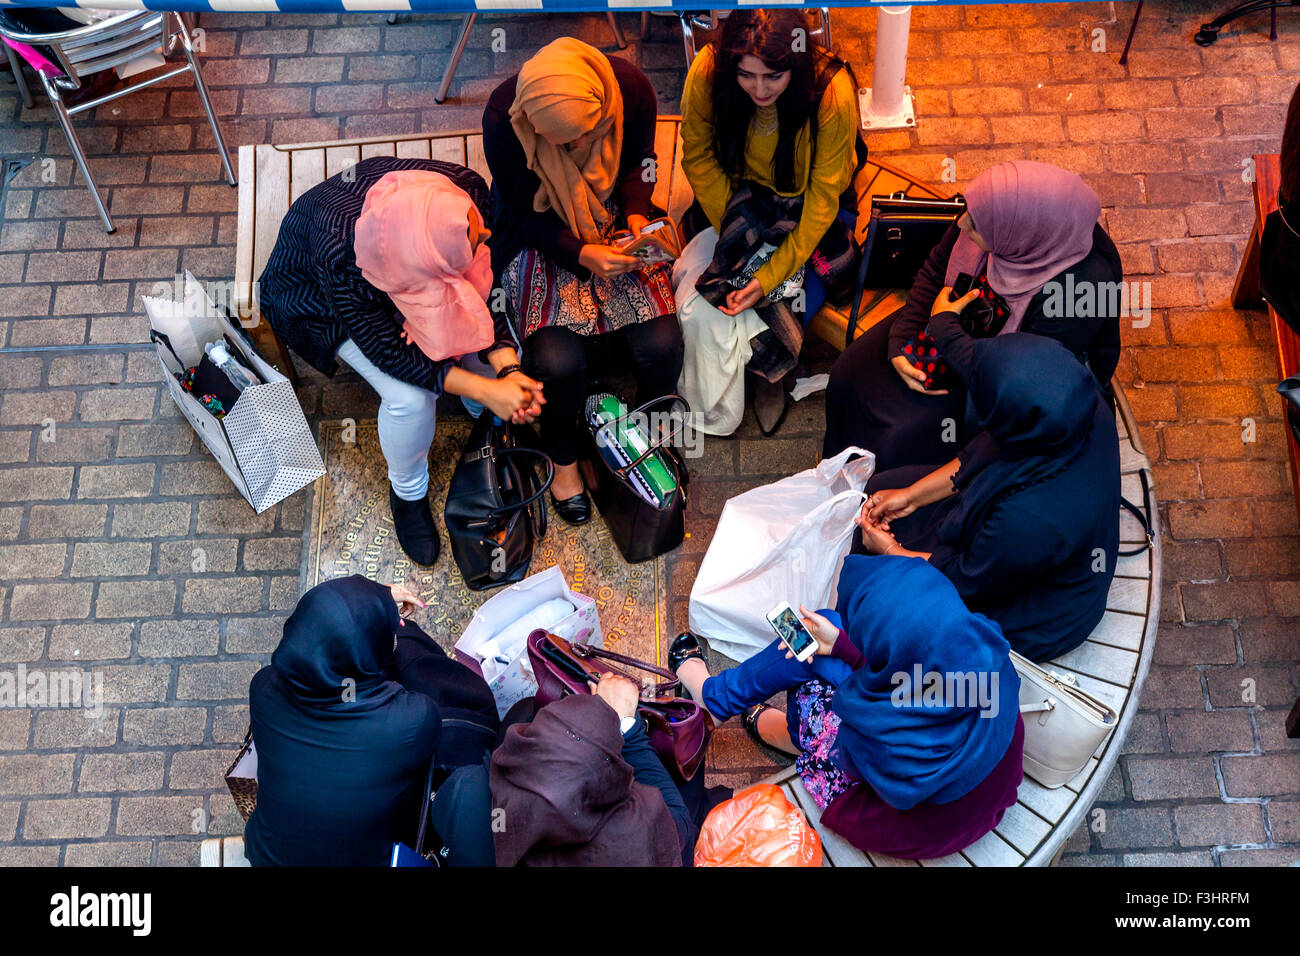 Young Muslim Women Sit Chatting At A Cafe In Carnaby Street, London, UK - Stock Image